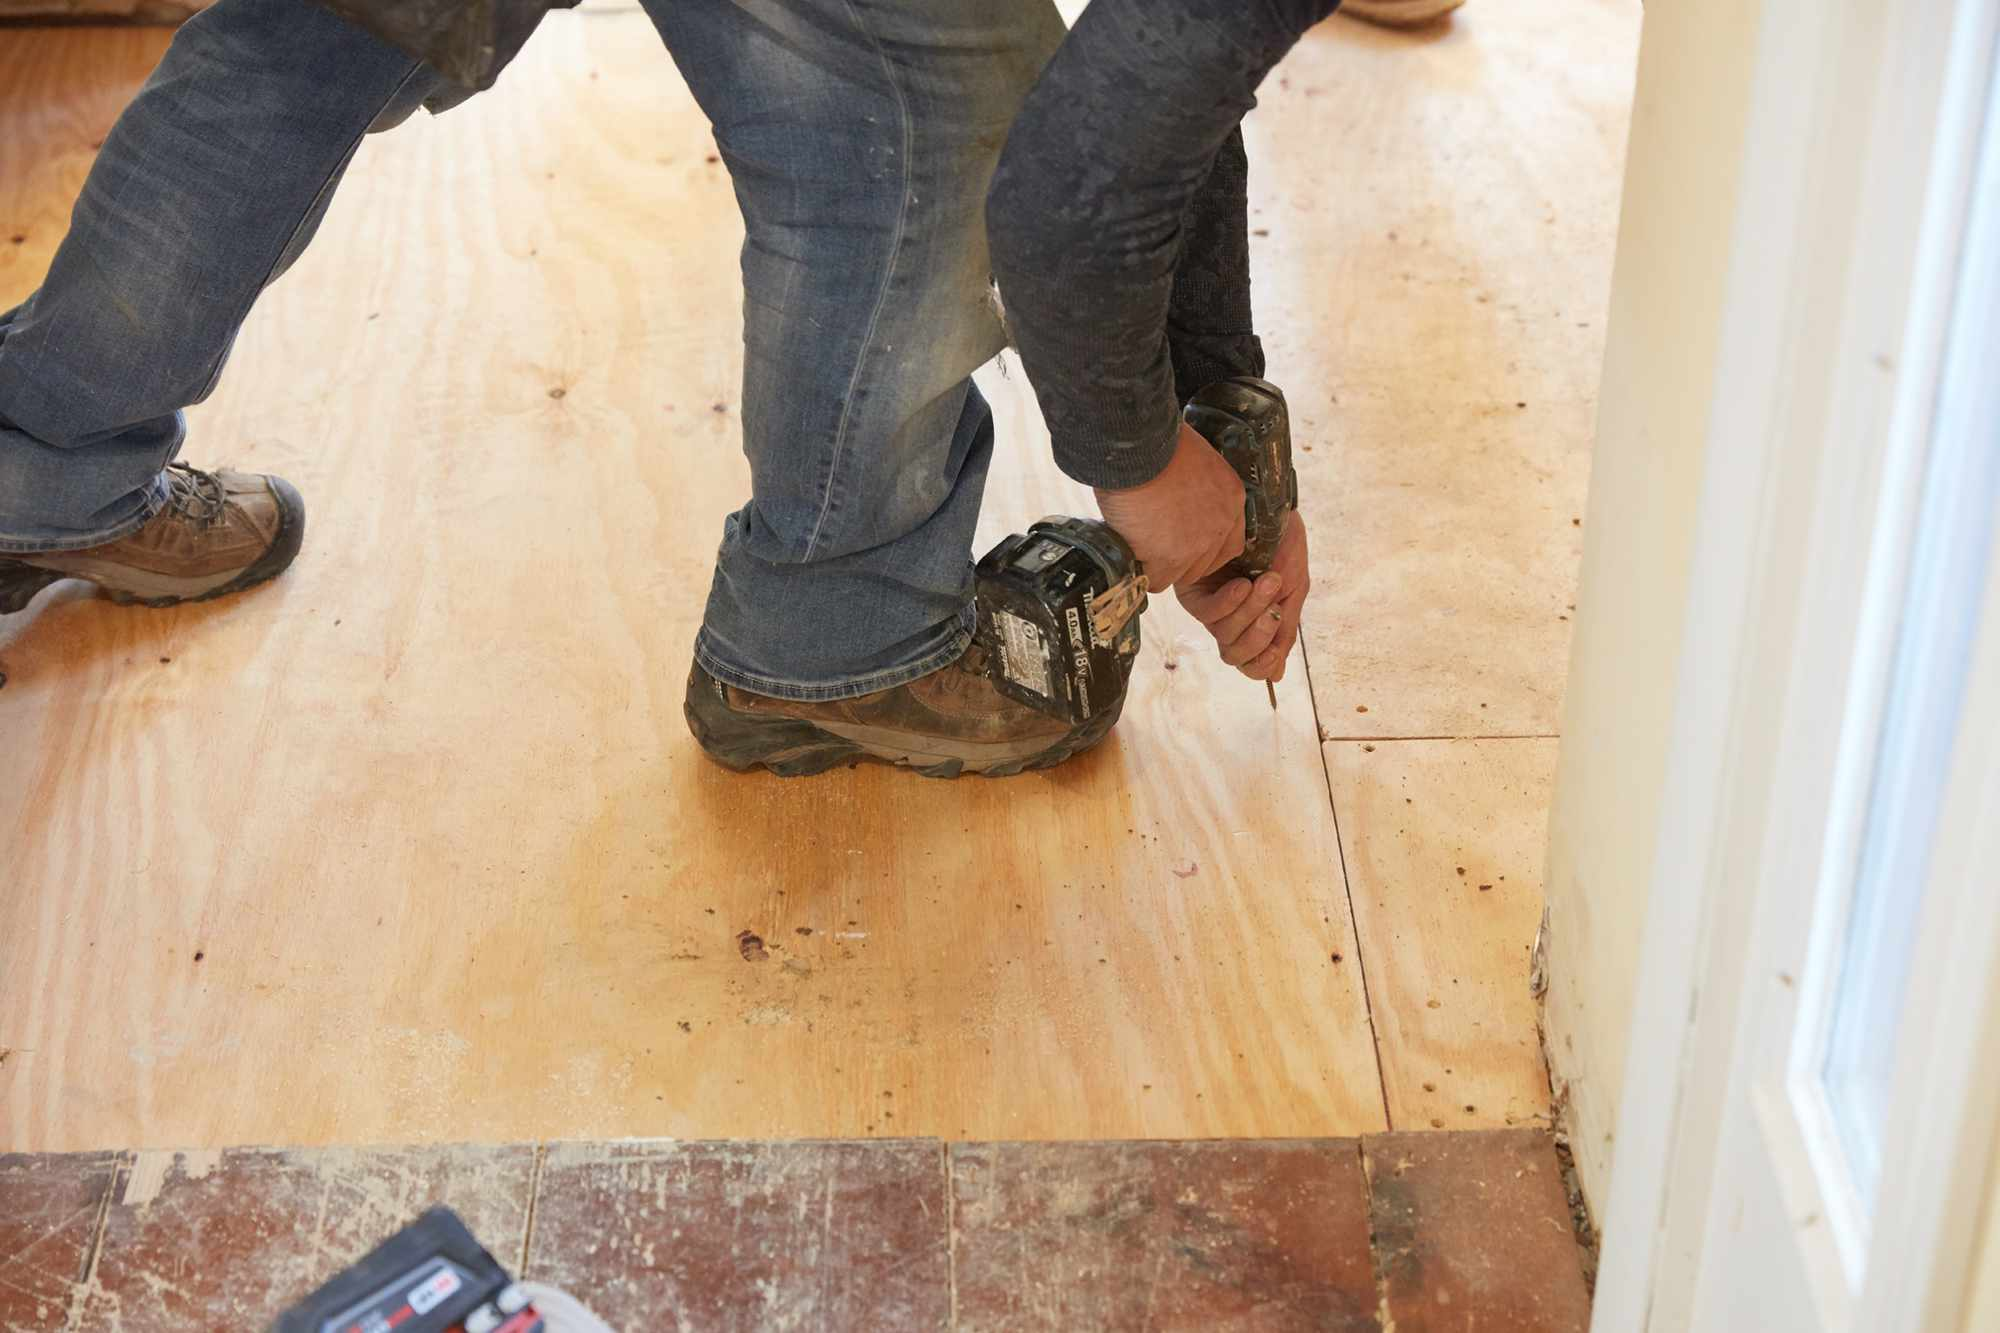 Exterior-grade plywood drilled into floor for ceramic tiles